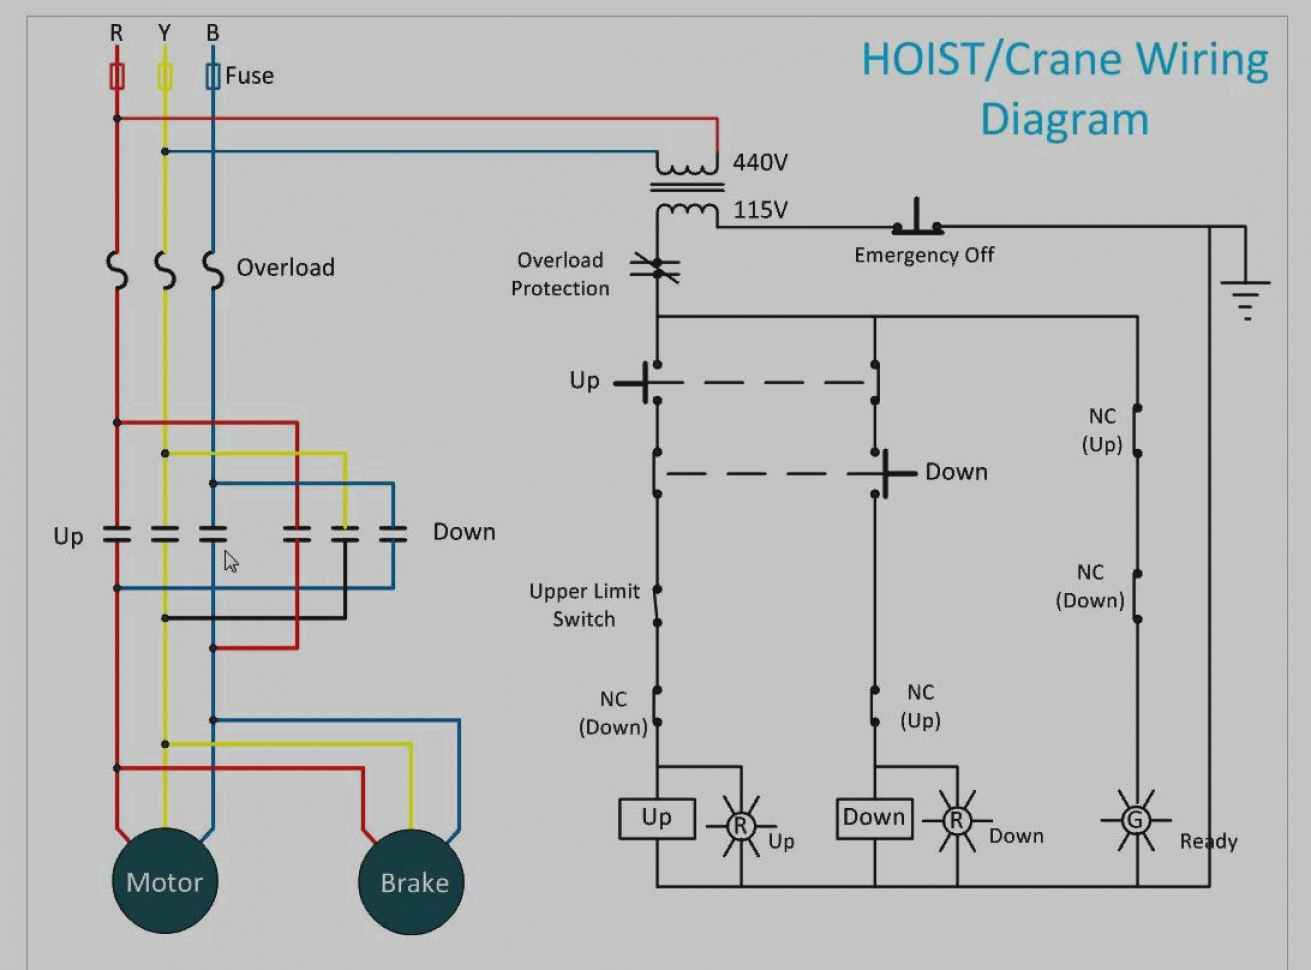 jet electric chain hoist wiring diagram Collection-2019 Jet Electric Chain Hoist Wiring Diagram 8-e